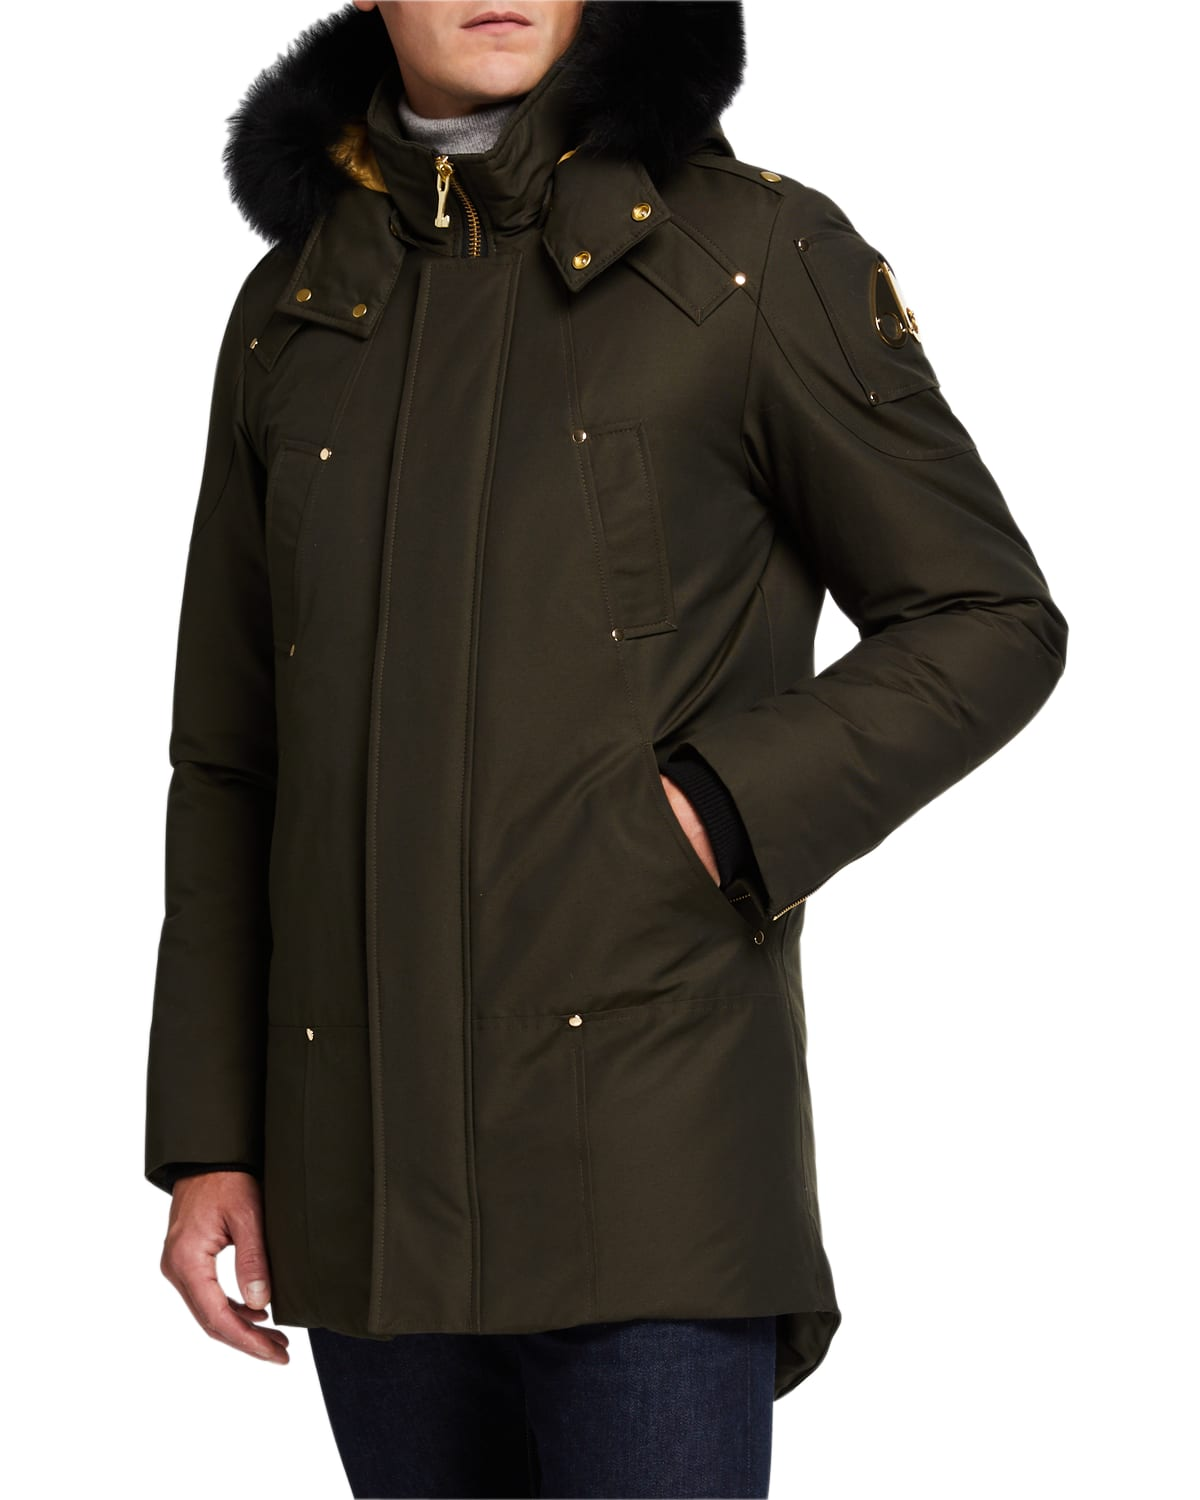 Men's Stag Lake Parka with Fur Hood